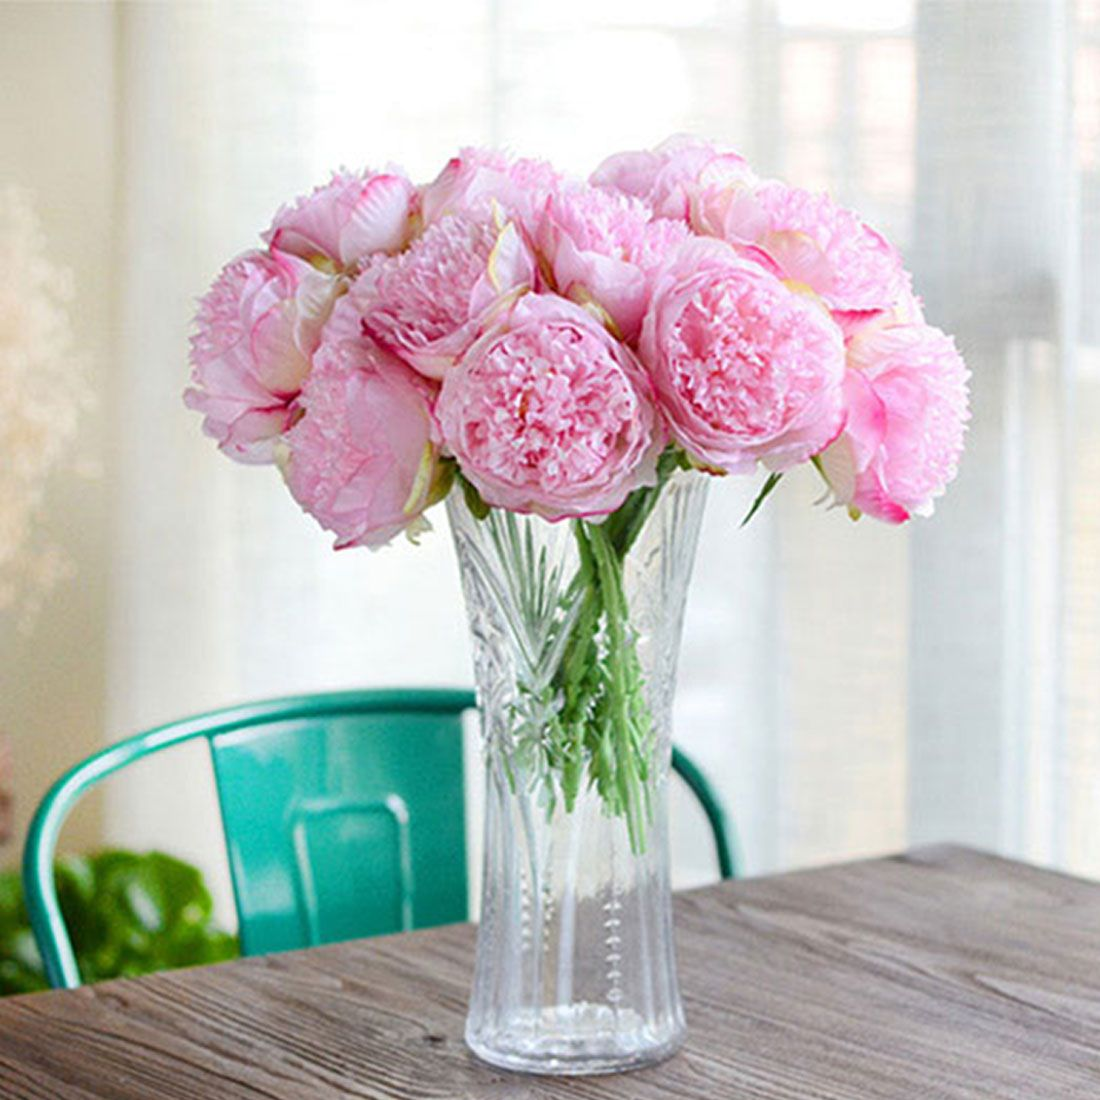 Artificial fake peony silk flowers bridal bouquet flower arrangement cheap fake peonies buy quality flower arrangement directly from china flowers bridal bouquet suppliers great cheap artificial fake peony silk flowers izmirmasajfo Choice Image